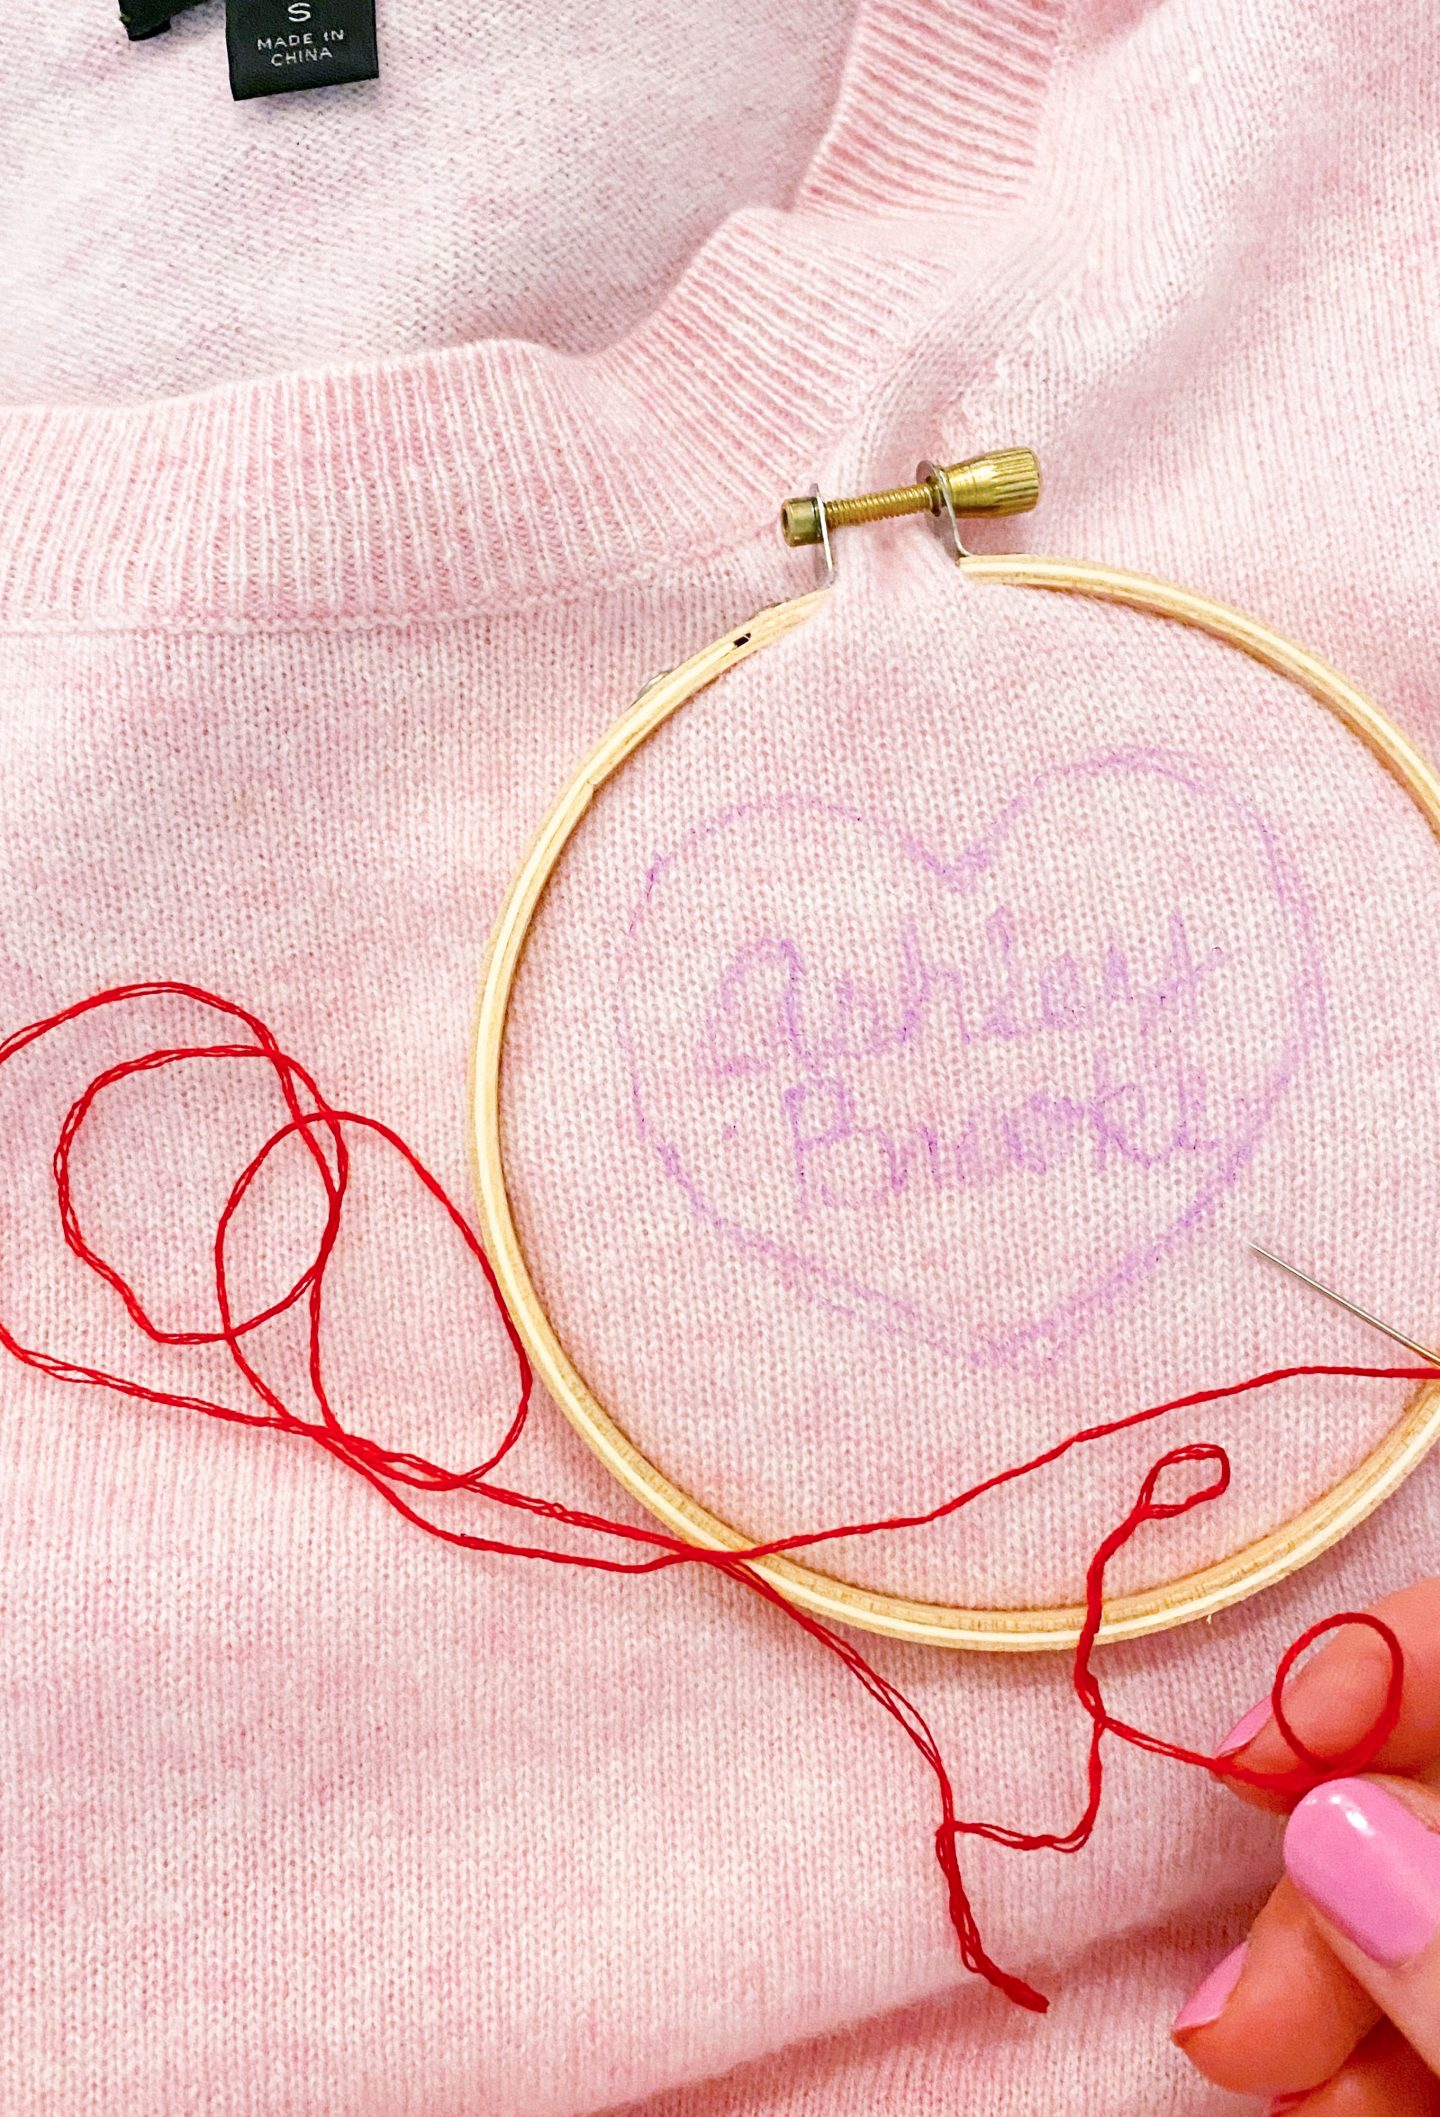 Embroidering a sweater and using invisible ink to trace the design